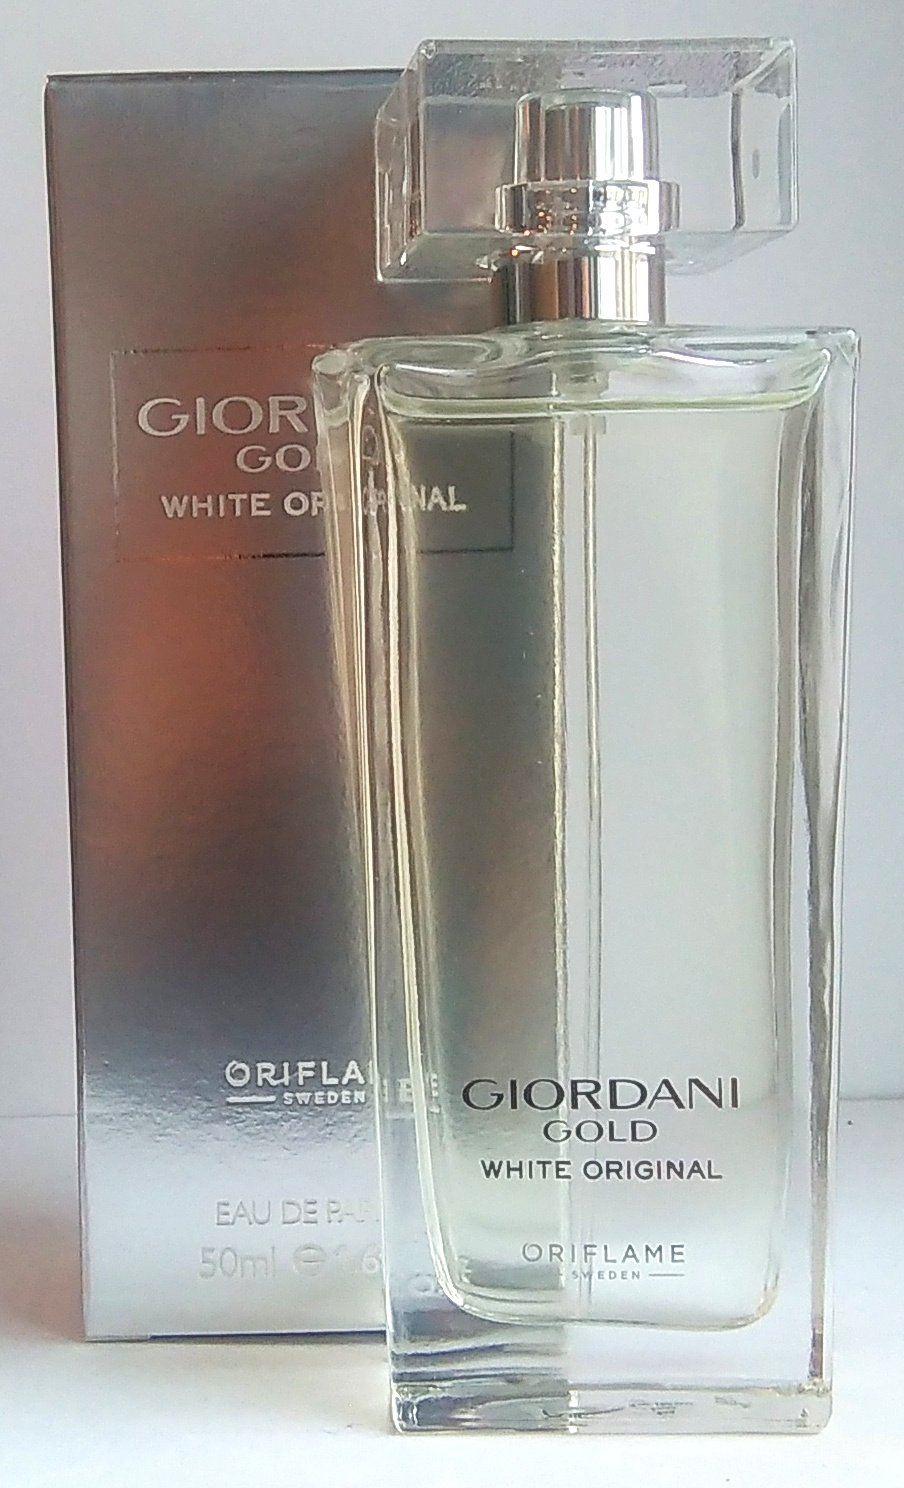 After Hours Perfume Oriflame Bottles T Tenderly Miss Giordani Vivacity Perfumed Body Lotion Buy Gold White Original Eau De Parfum 50ml Online At Low Prices In India Amazonin